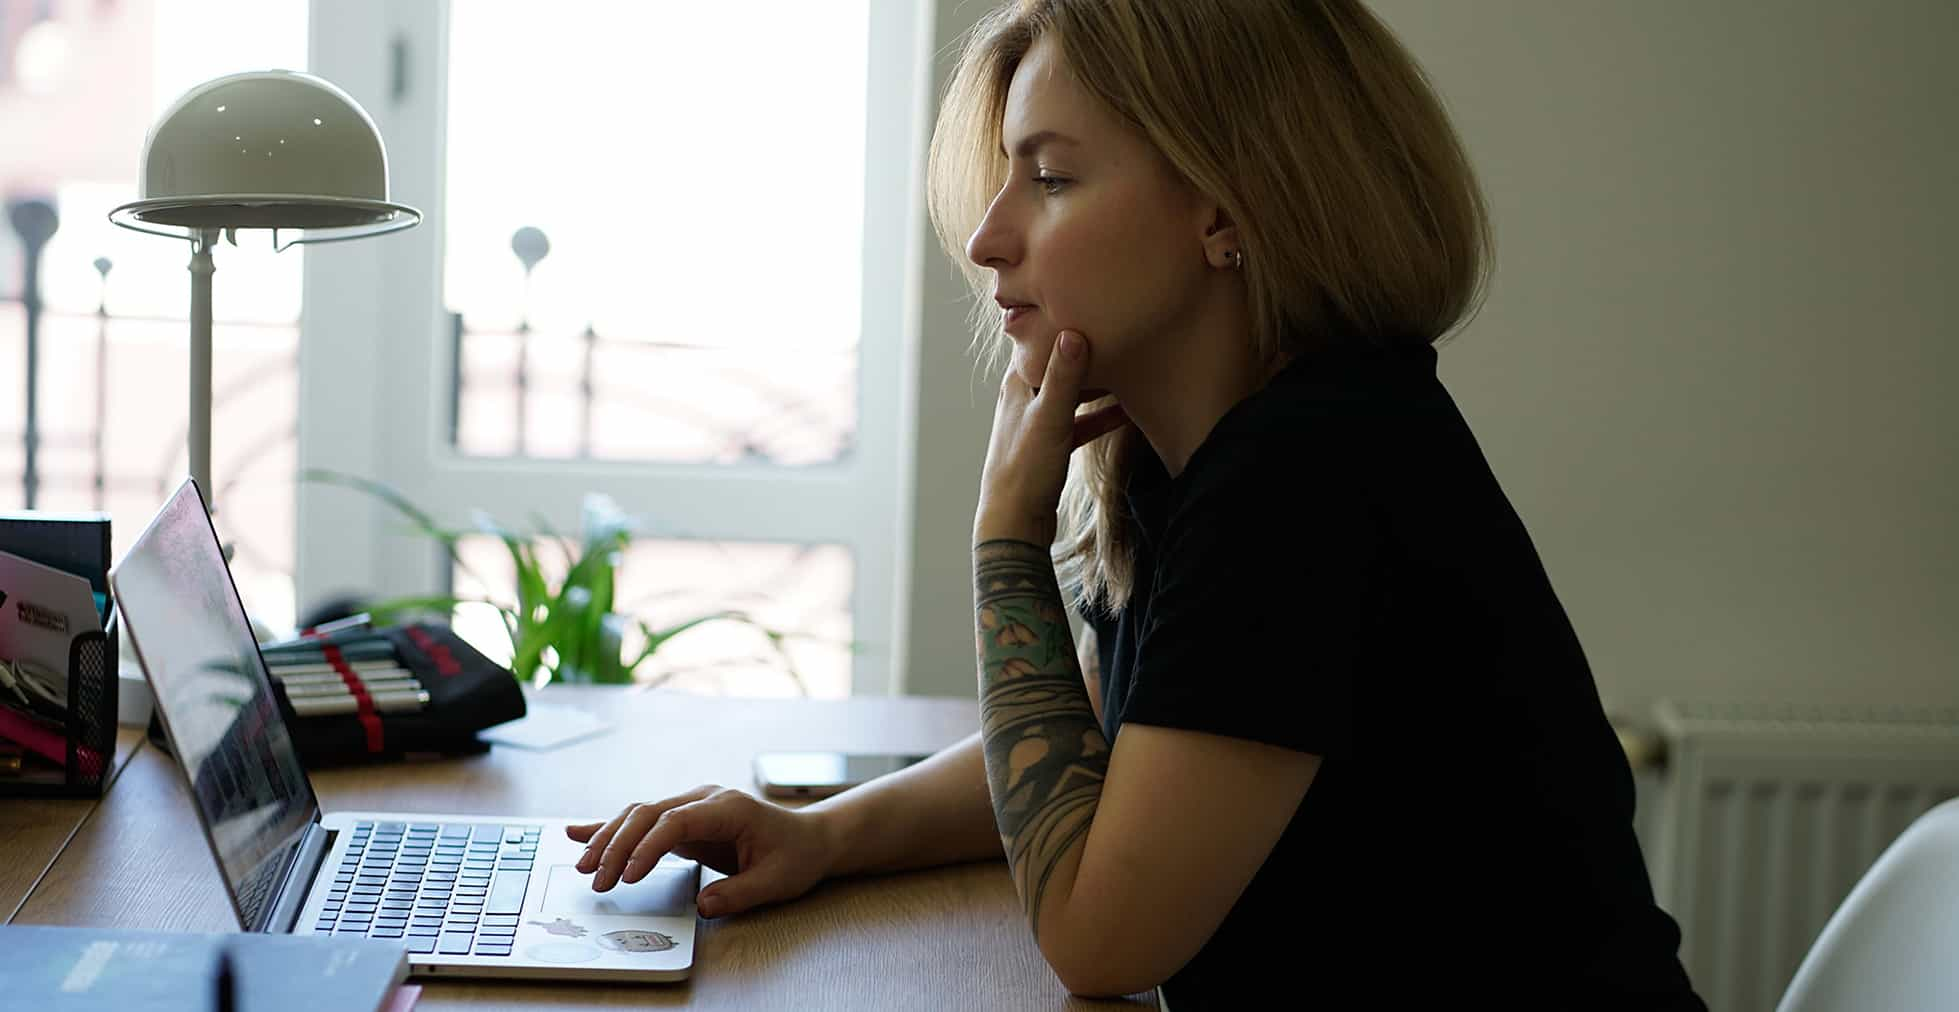 Woman with pale skin and blonde hair looking pensively at a computer